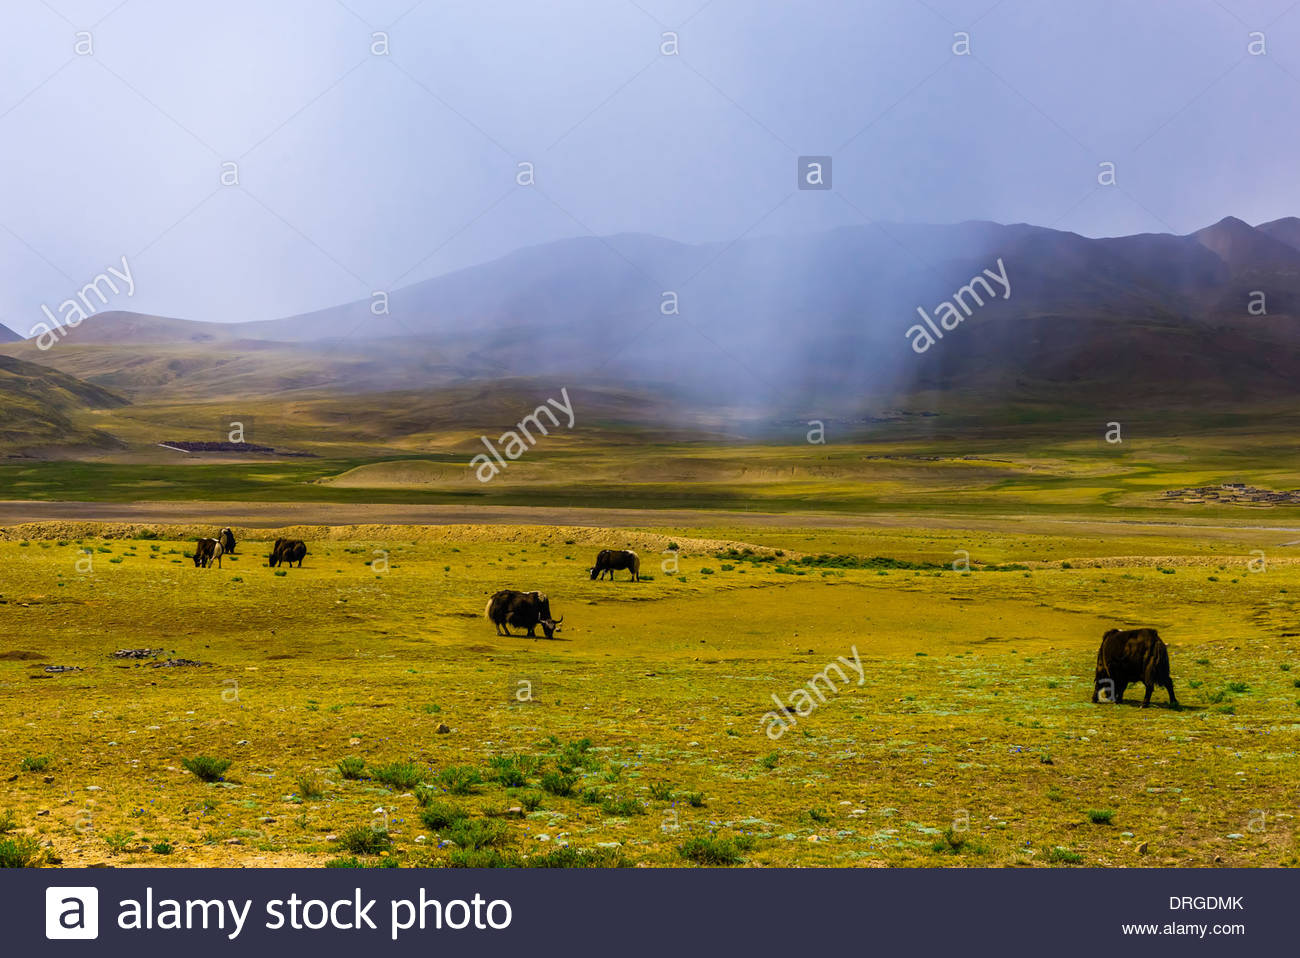 Yaks graze and rain clouds hang overhead, Shannan Prefecture, Tibet (Xizang), China. - Stock Image